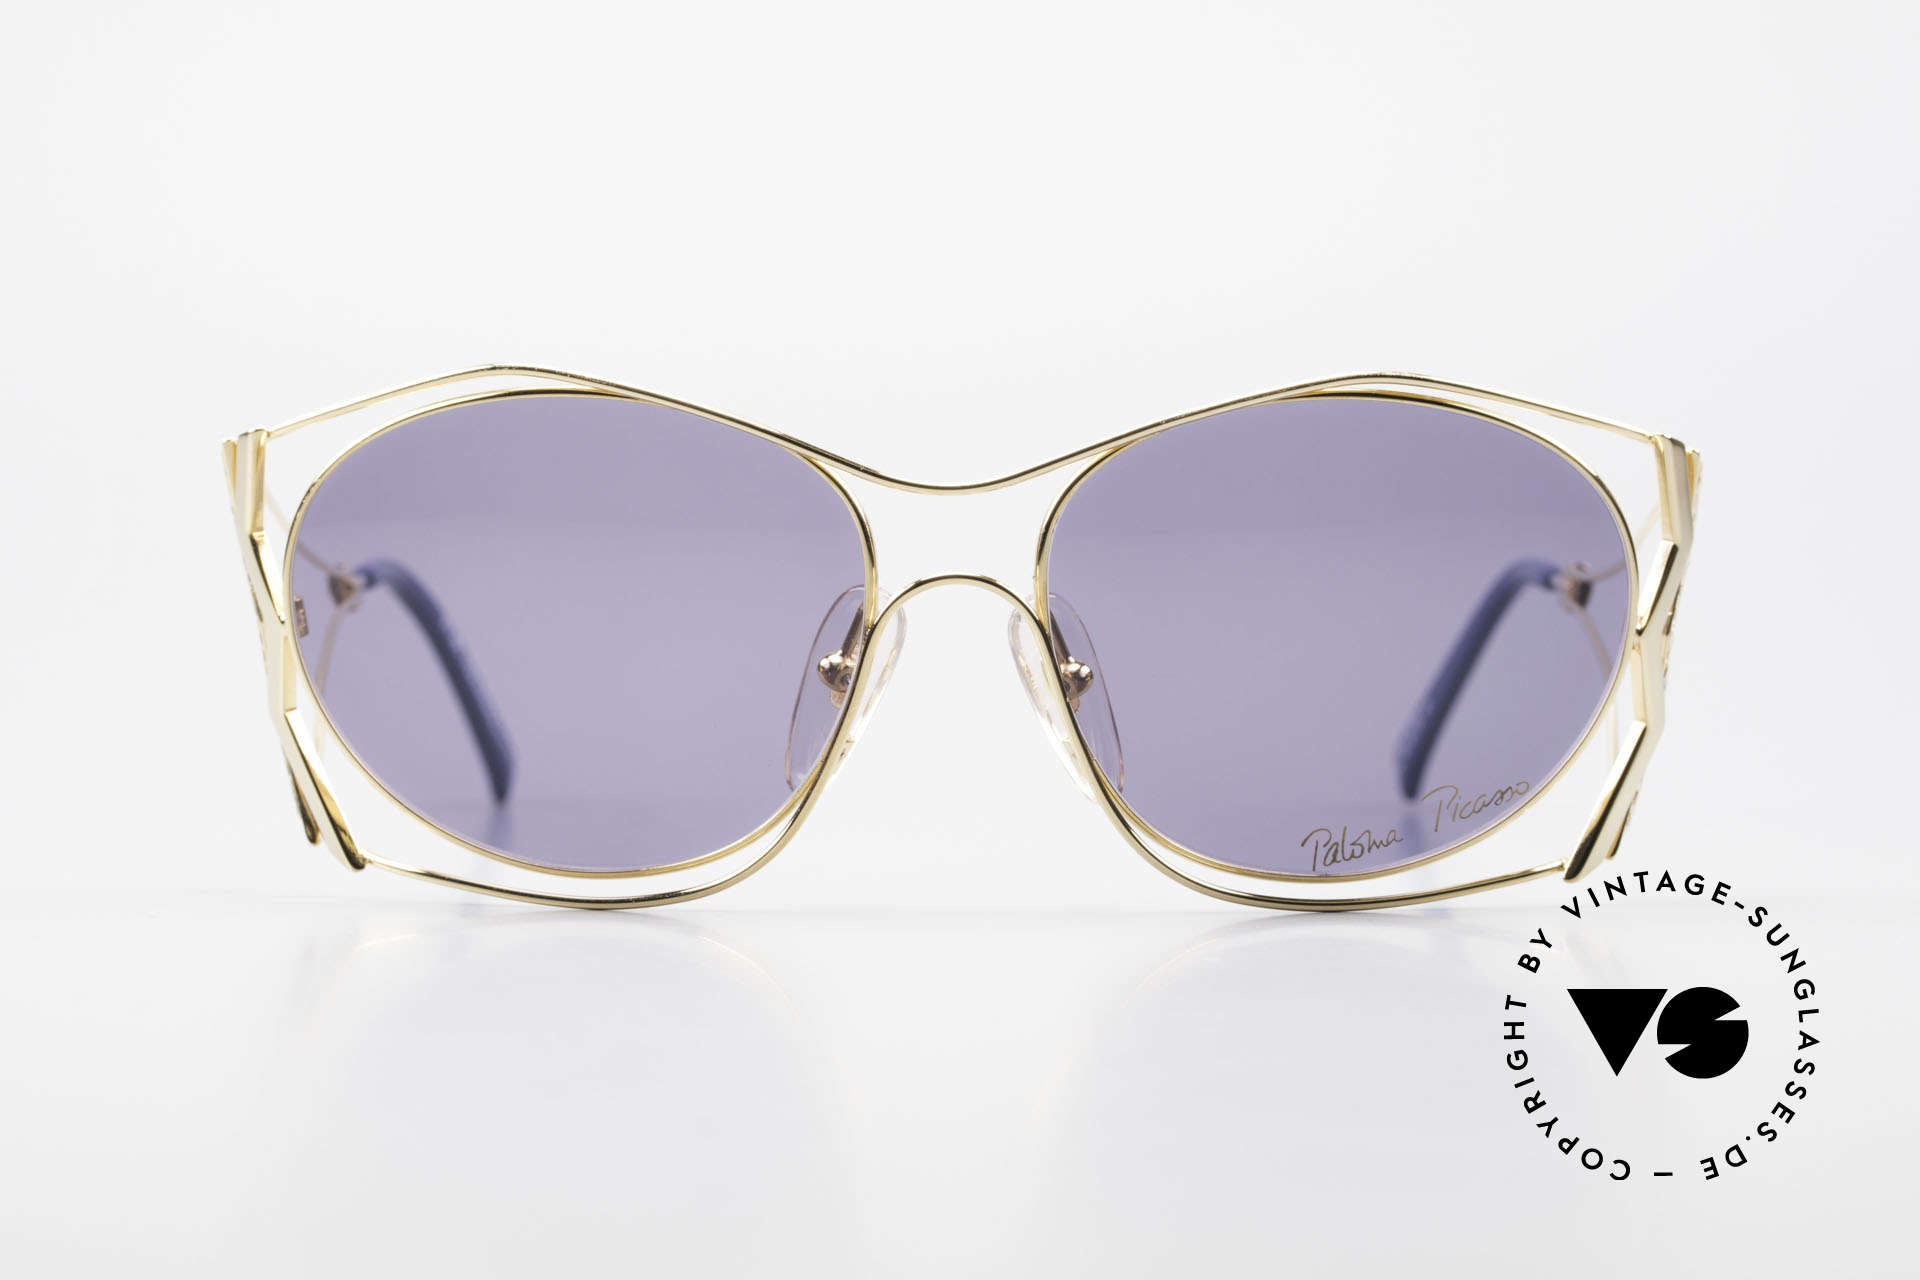 Paloma Picasso 3707 90's Sunglasses Gold-Plated, playful and elegant at the same time; just glamorous, Made for Women